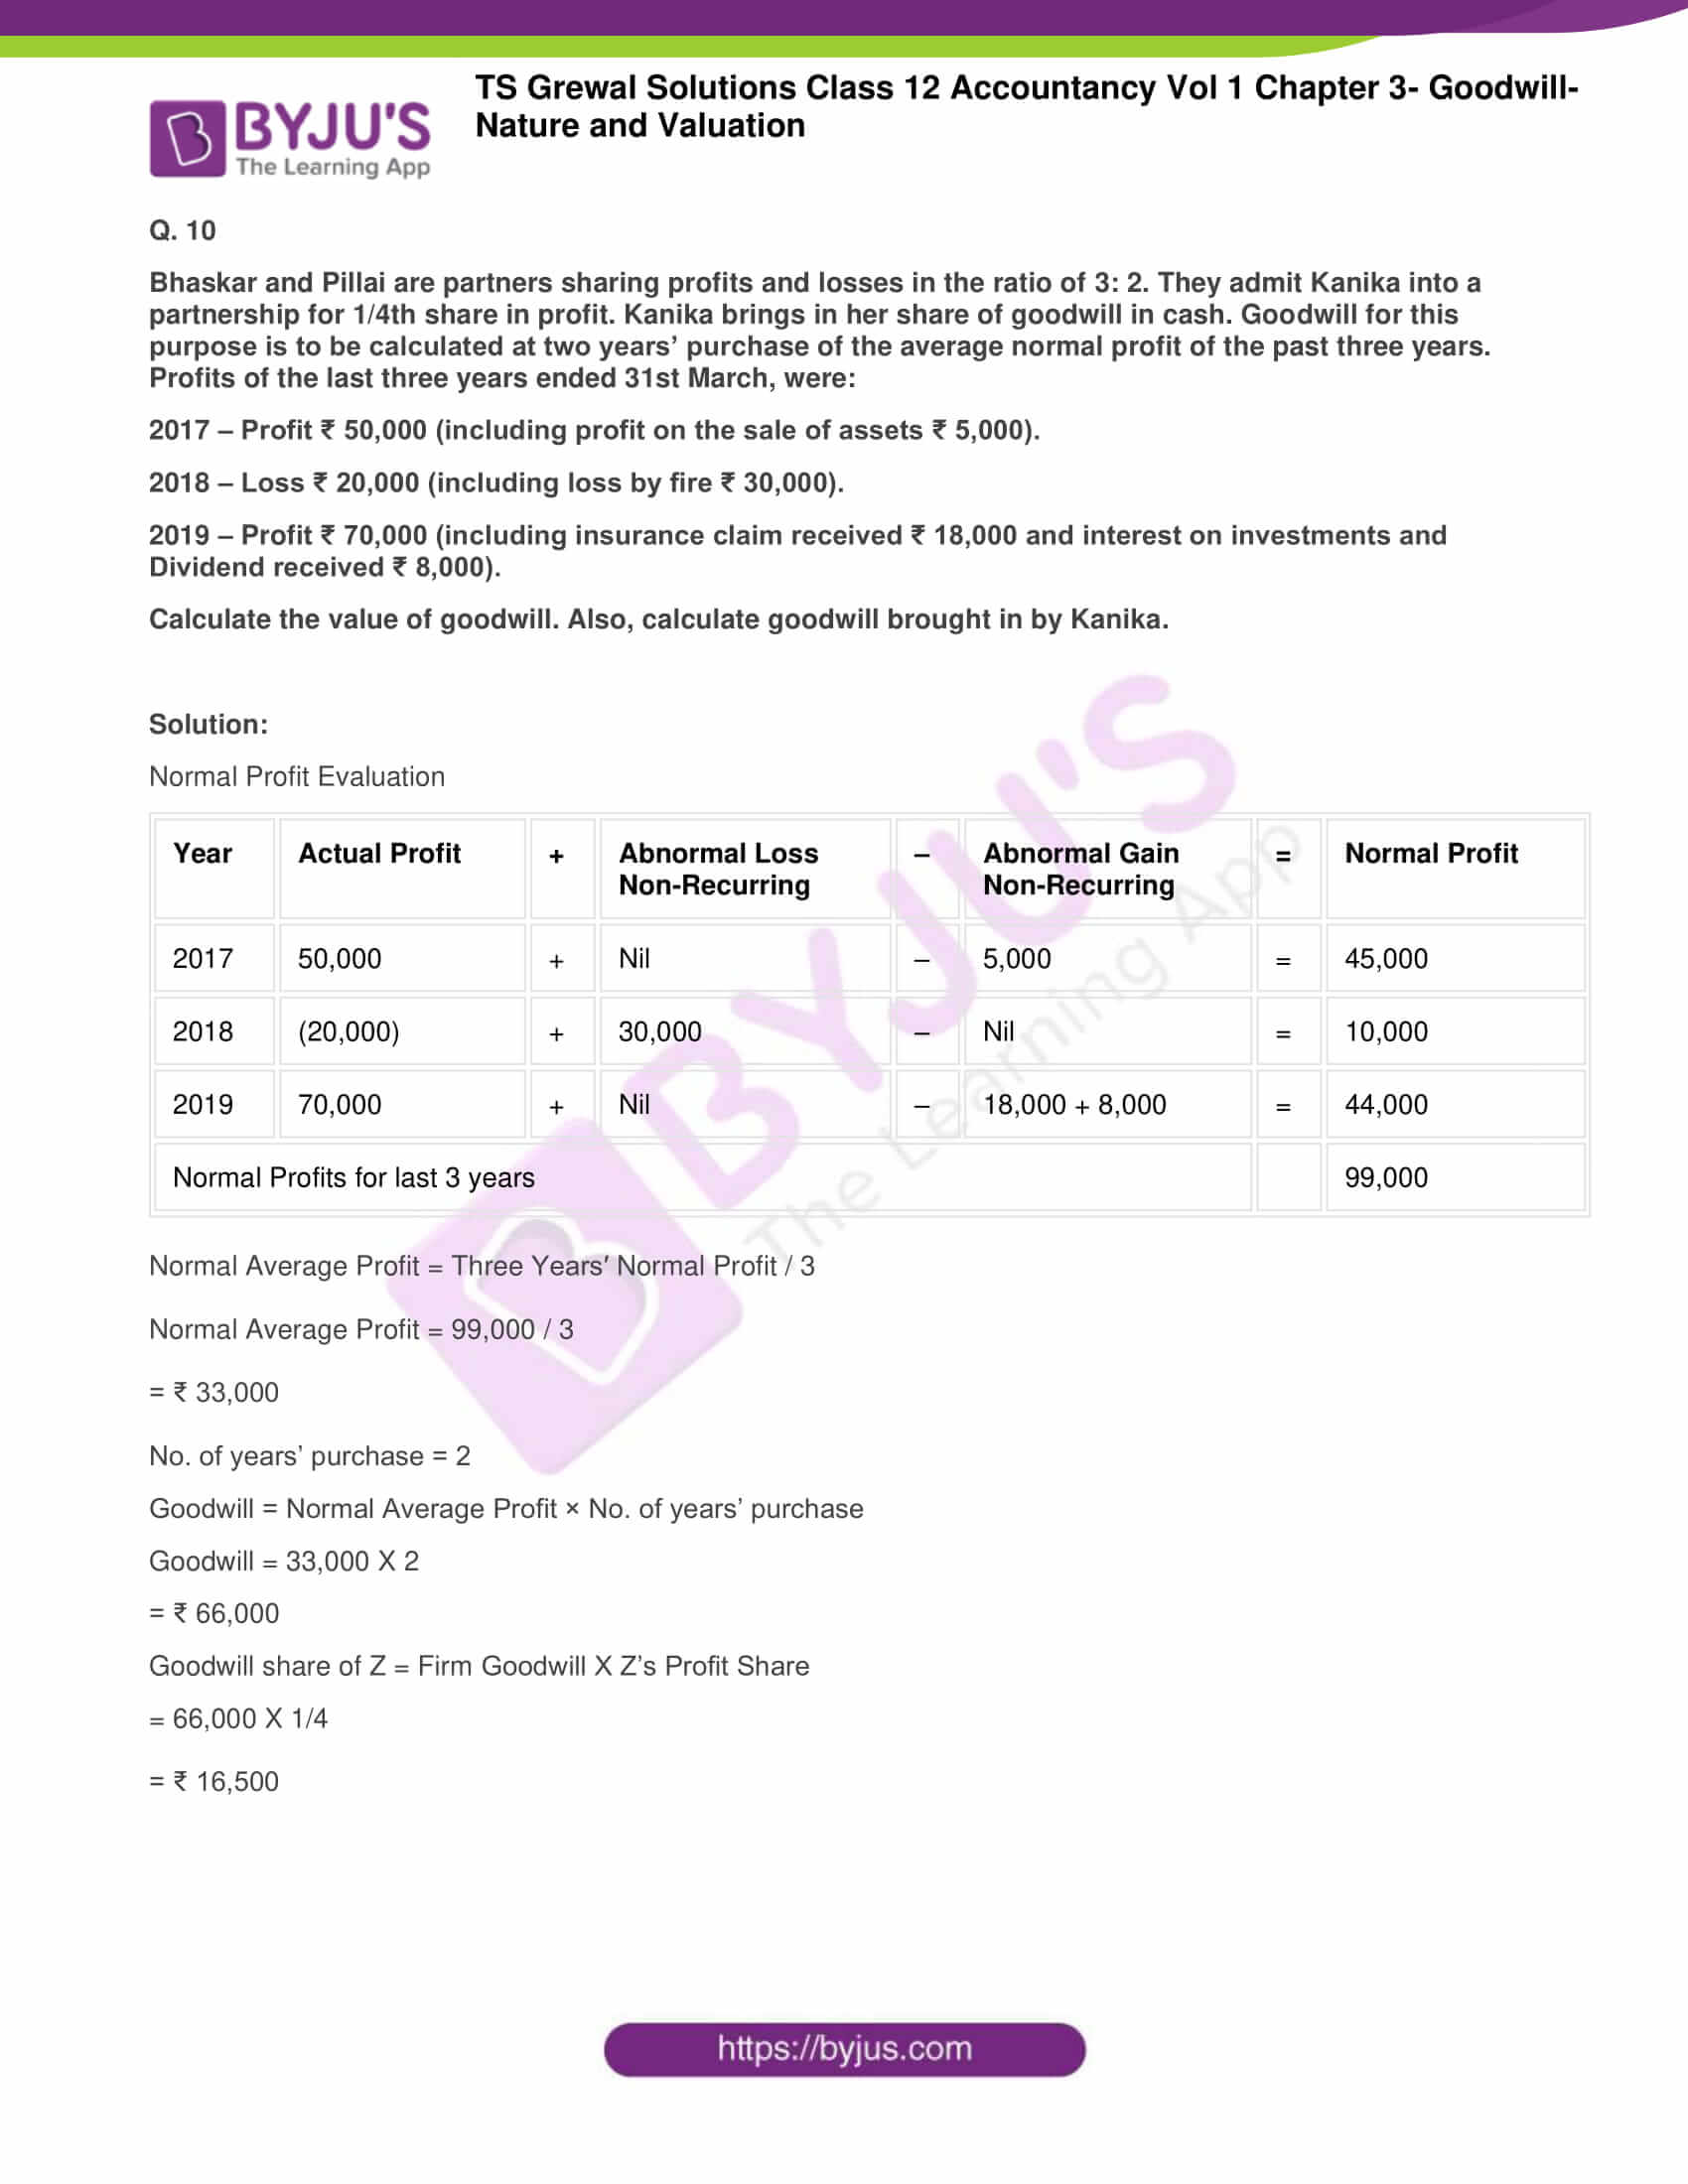 ts grewal solutions for class 12 accountancy vol 1 chapter 308